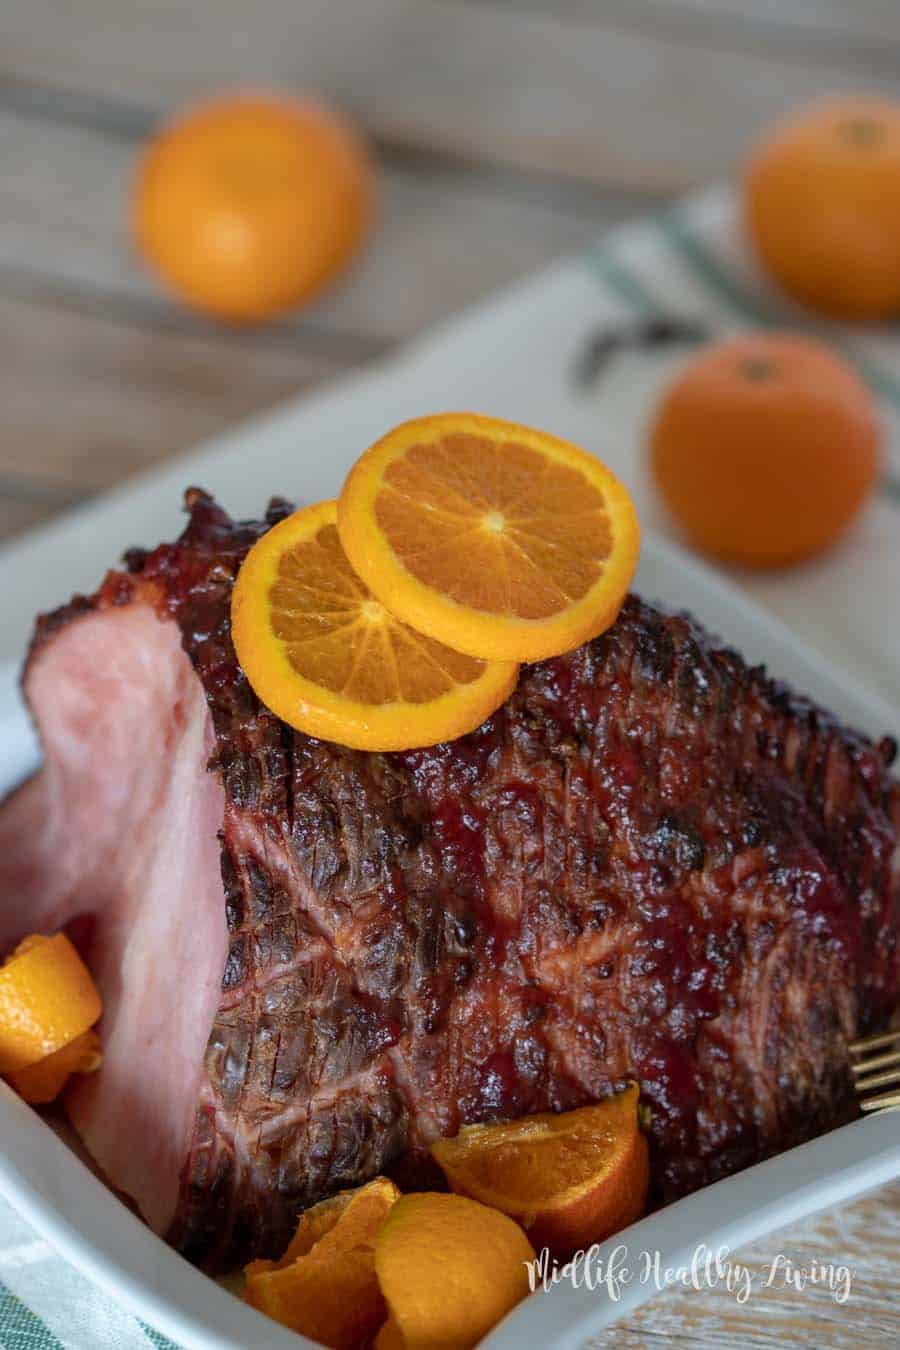 This Weight Watchers citrus and cranberry ham is a snap to make.  There are 5 Weight Watchers Freestyle Smart Points in each serving of this delicious ham.